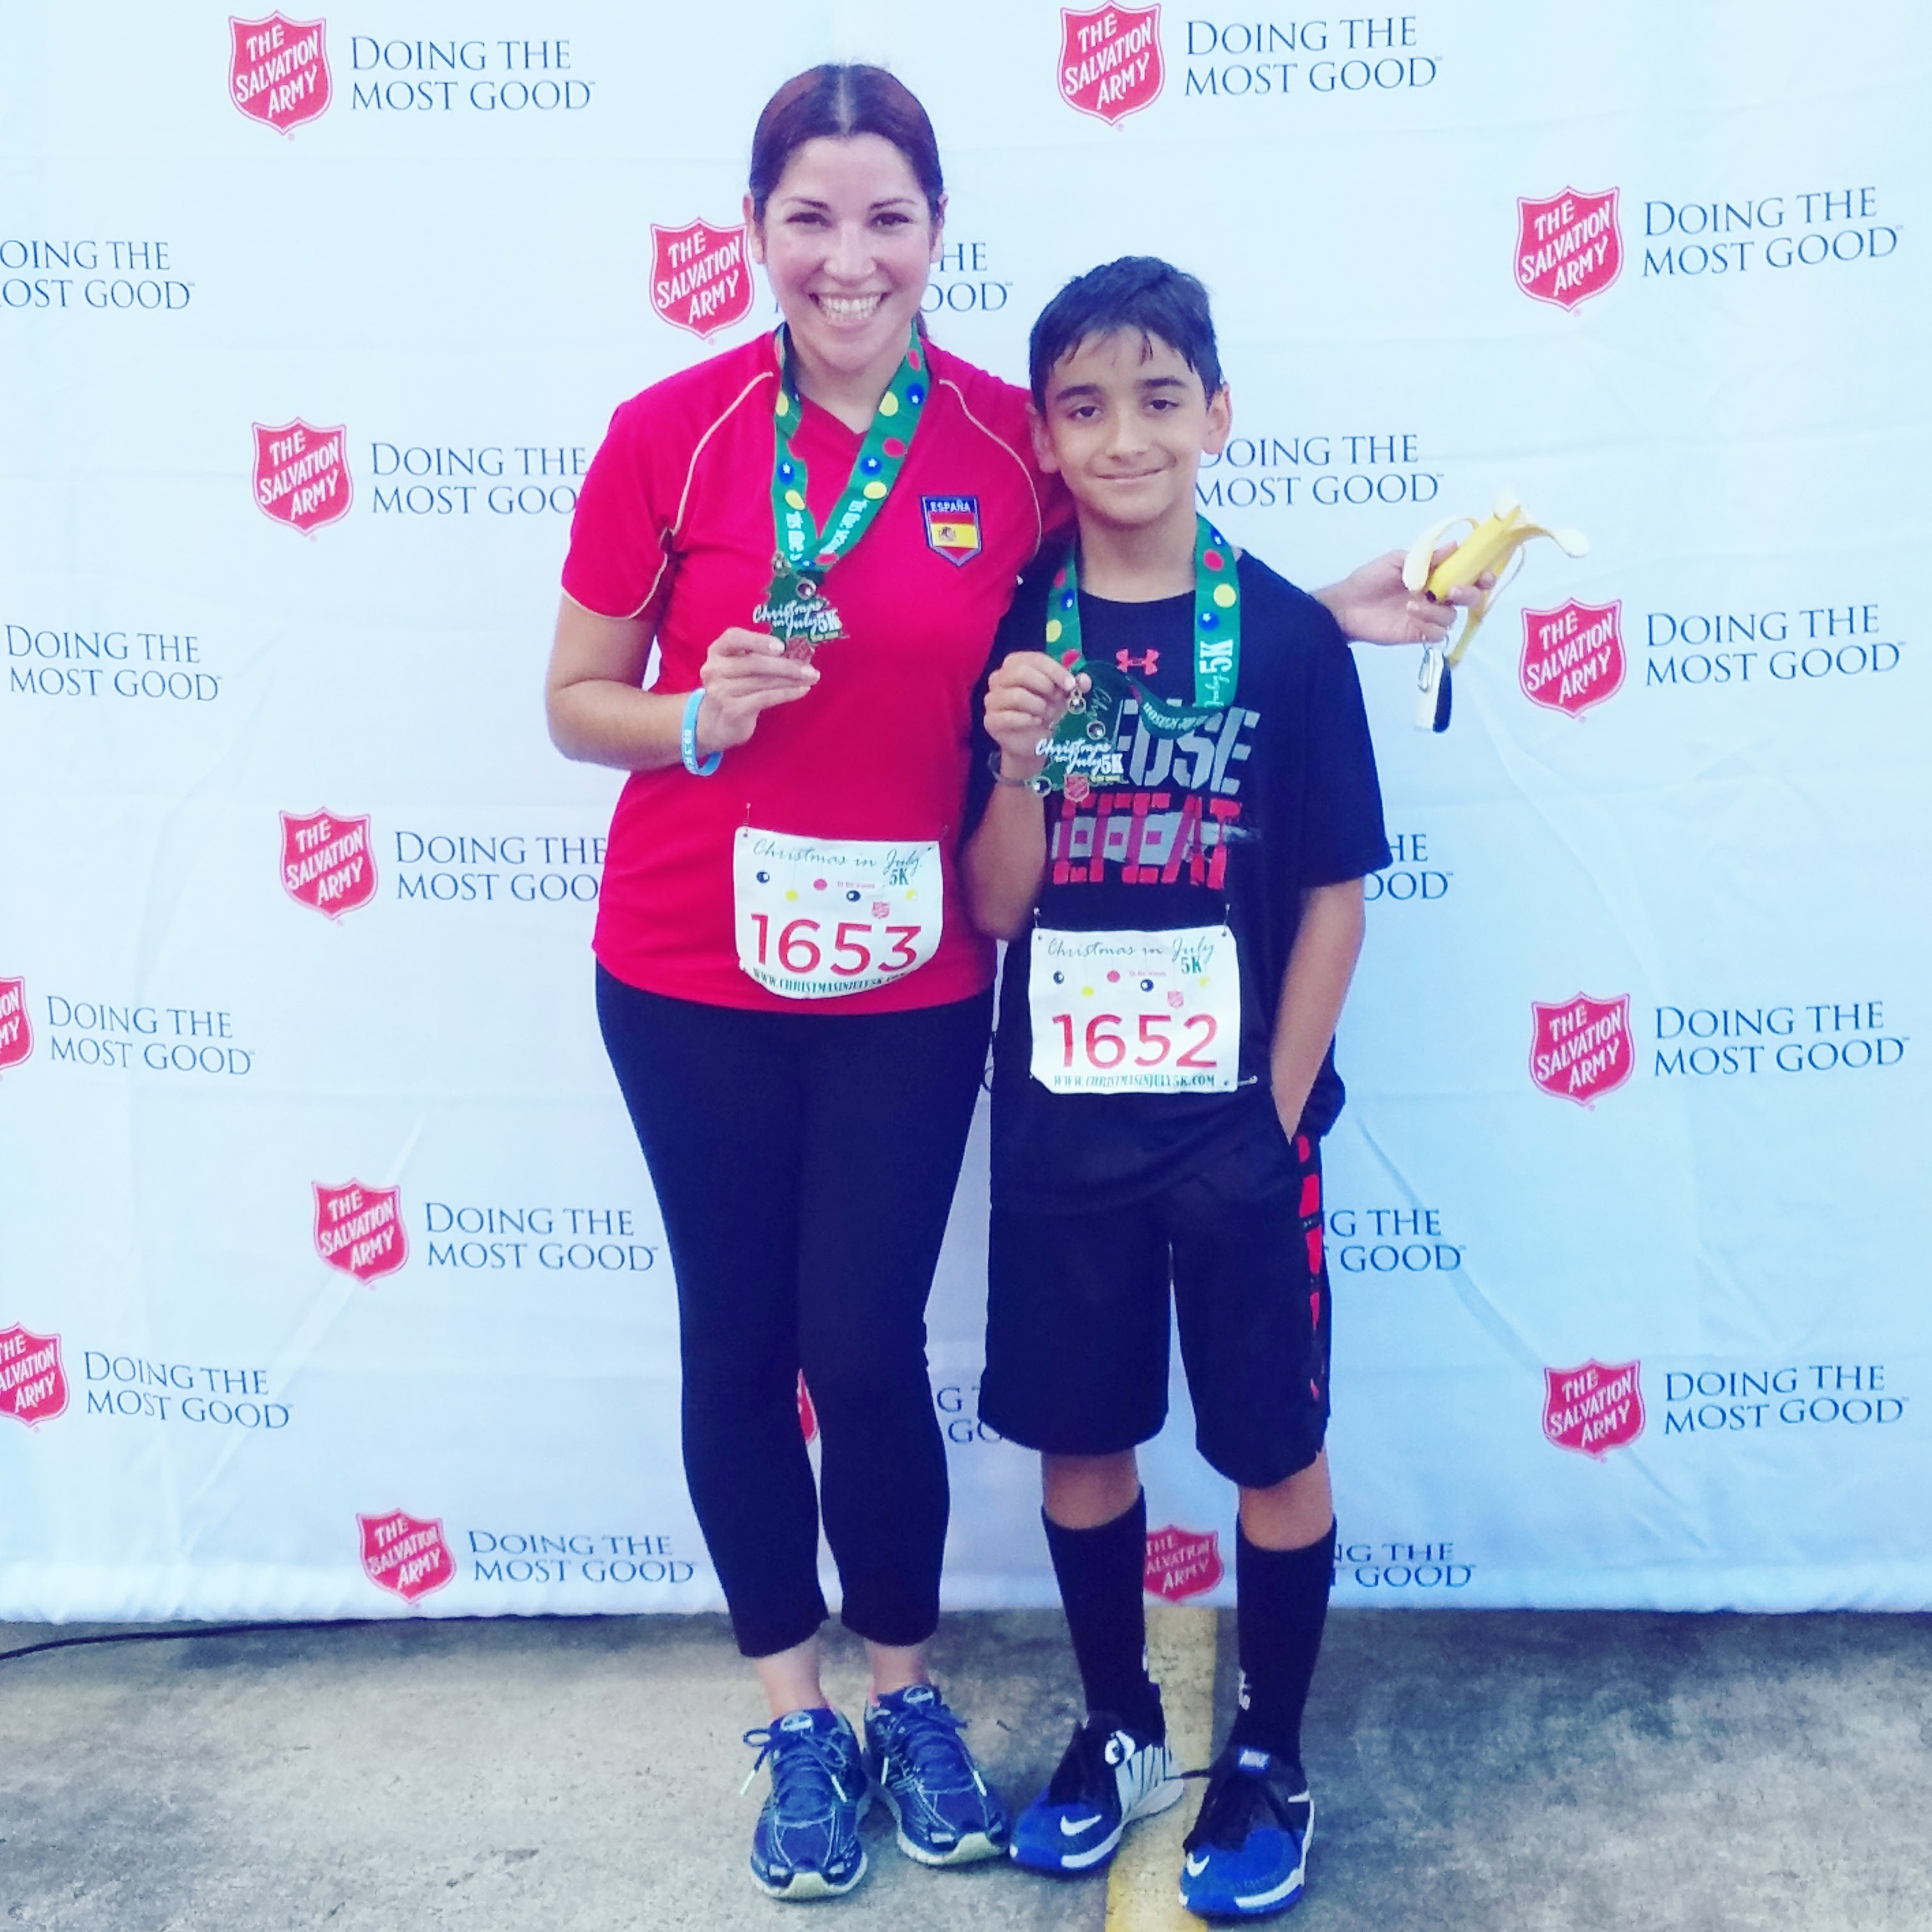 Coppelia and son Salvation Army Christmas in July 5k